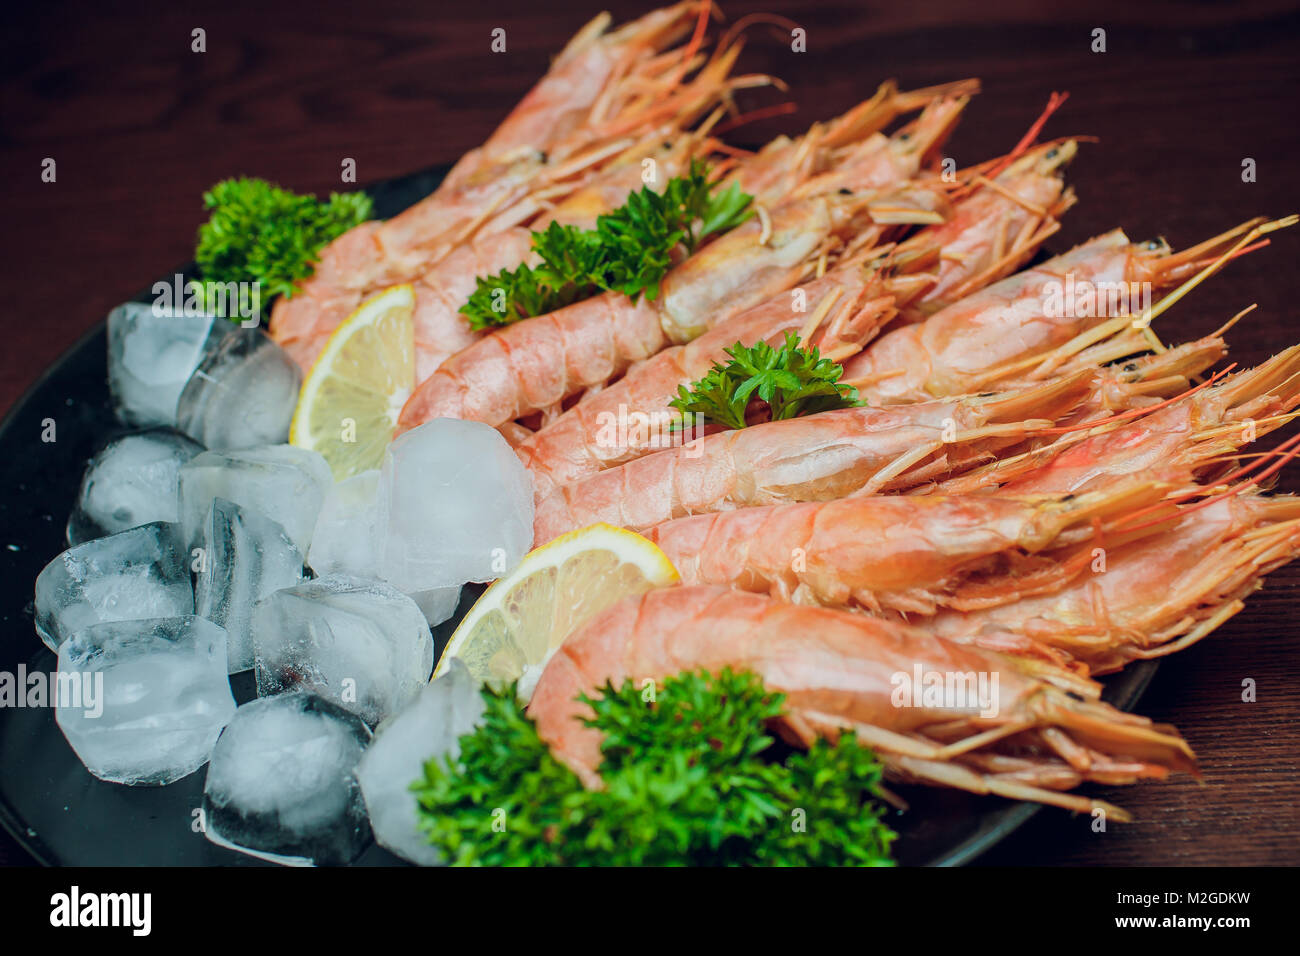 Argentine Raw Shrimp Seafood Food Red Ice Stock Photo 173694973 Alamy